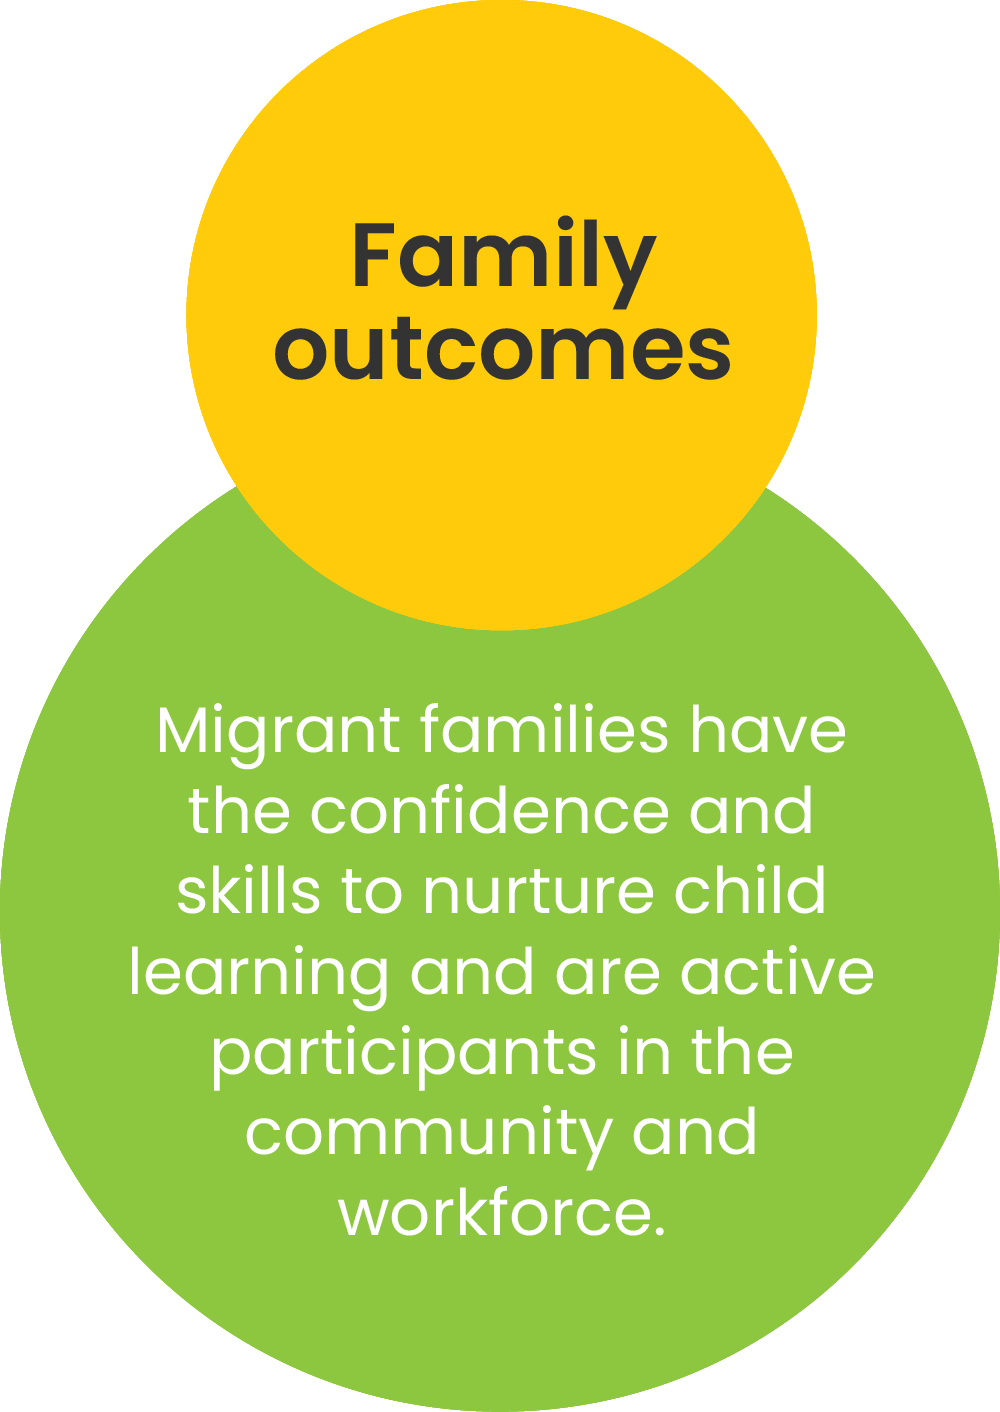 Migrant families have the confidence and skills to nurture child learning and are active participants in the community and workforce.